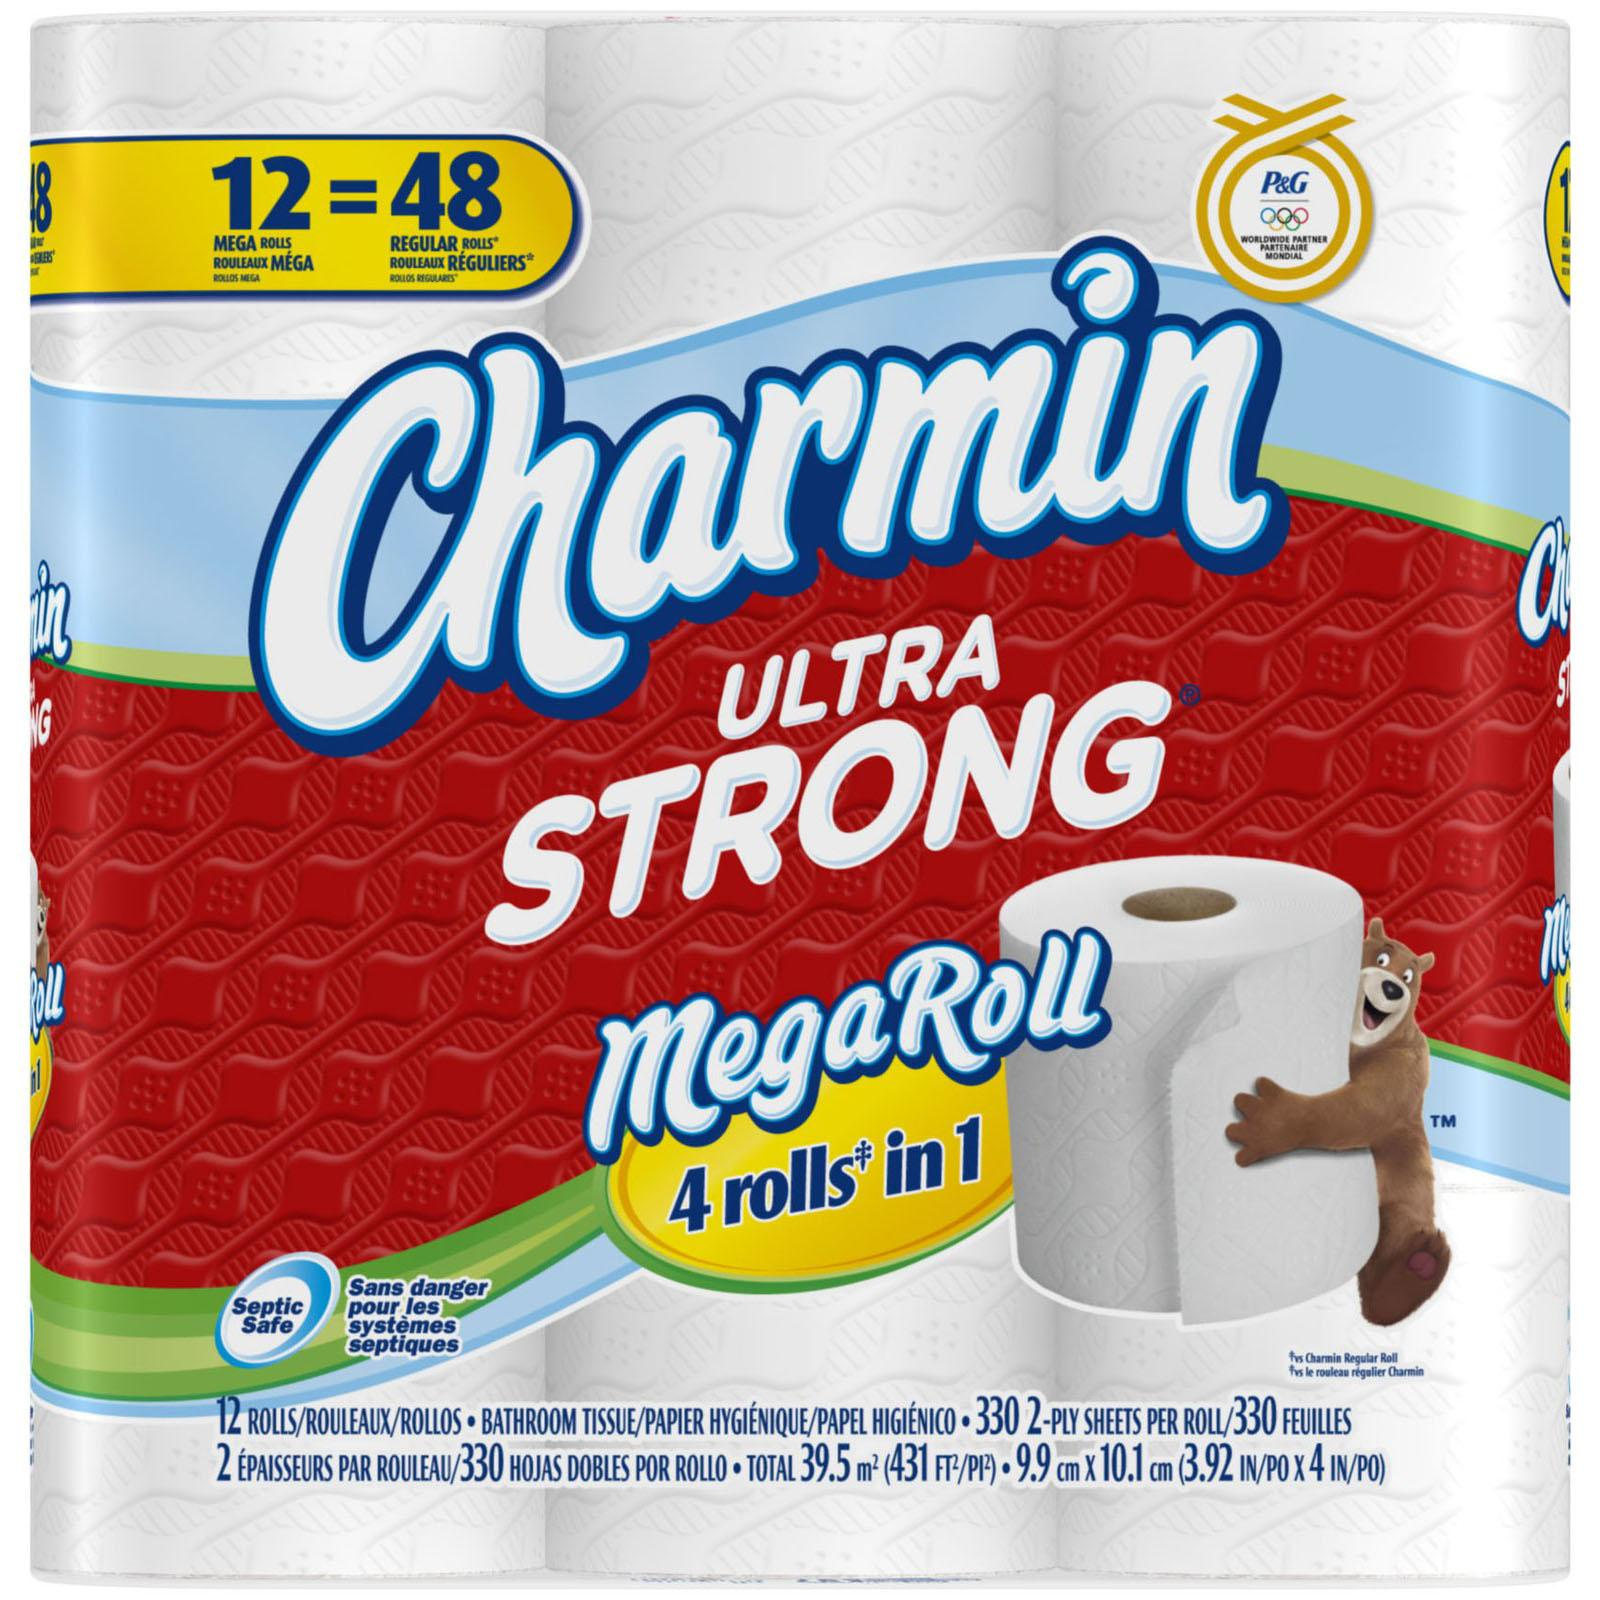 96 Charmin Ultra Strong Toilet Paper Mega Rolls